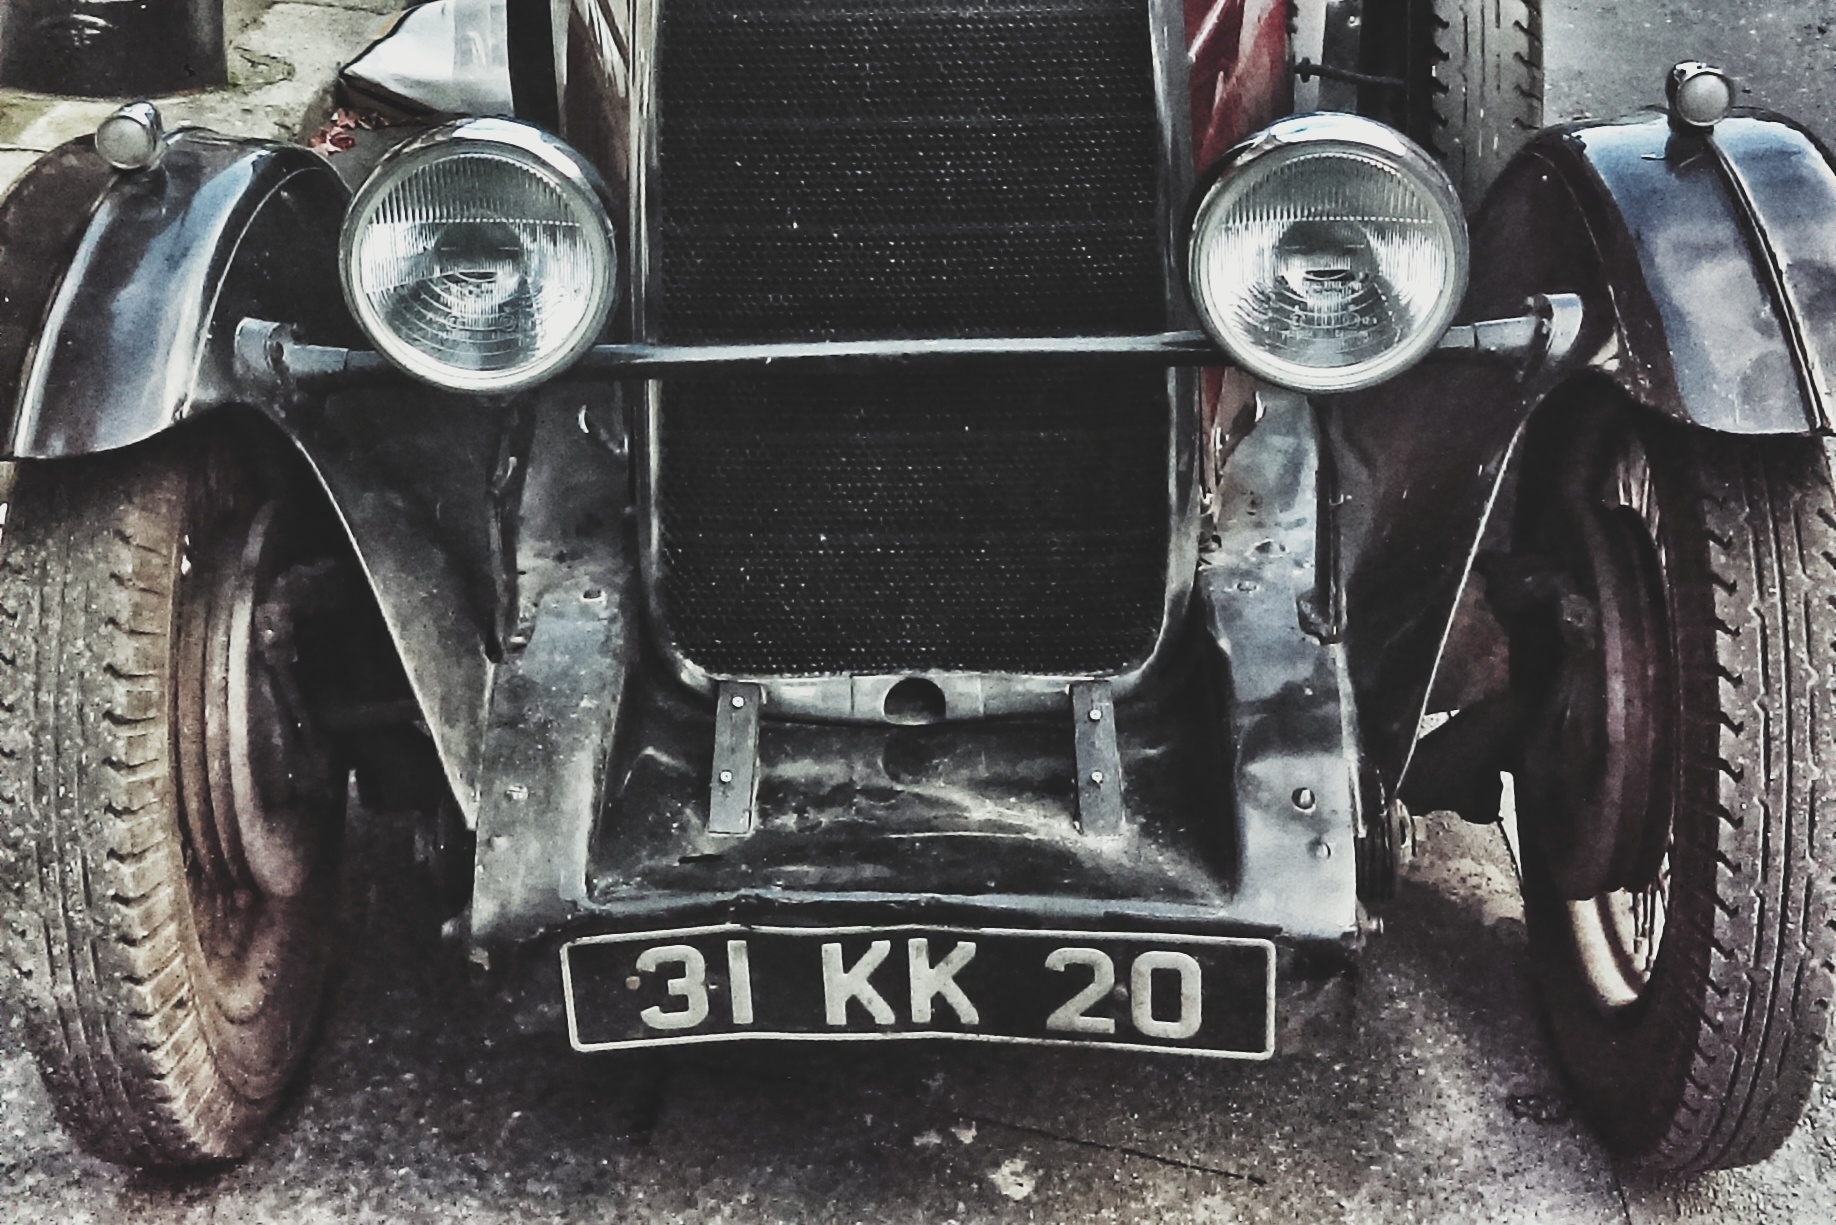 Car front and plate